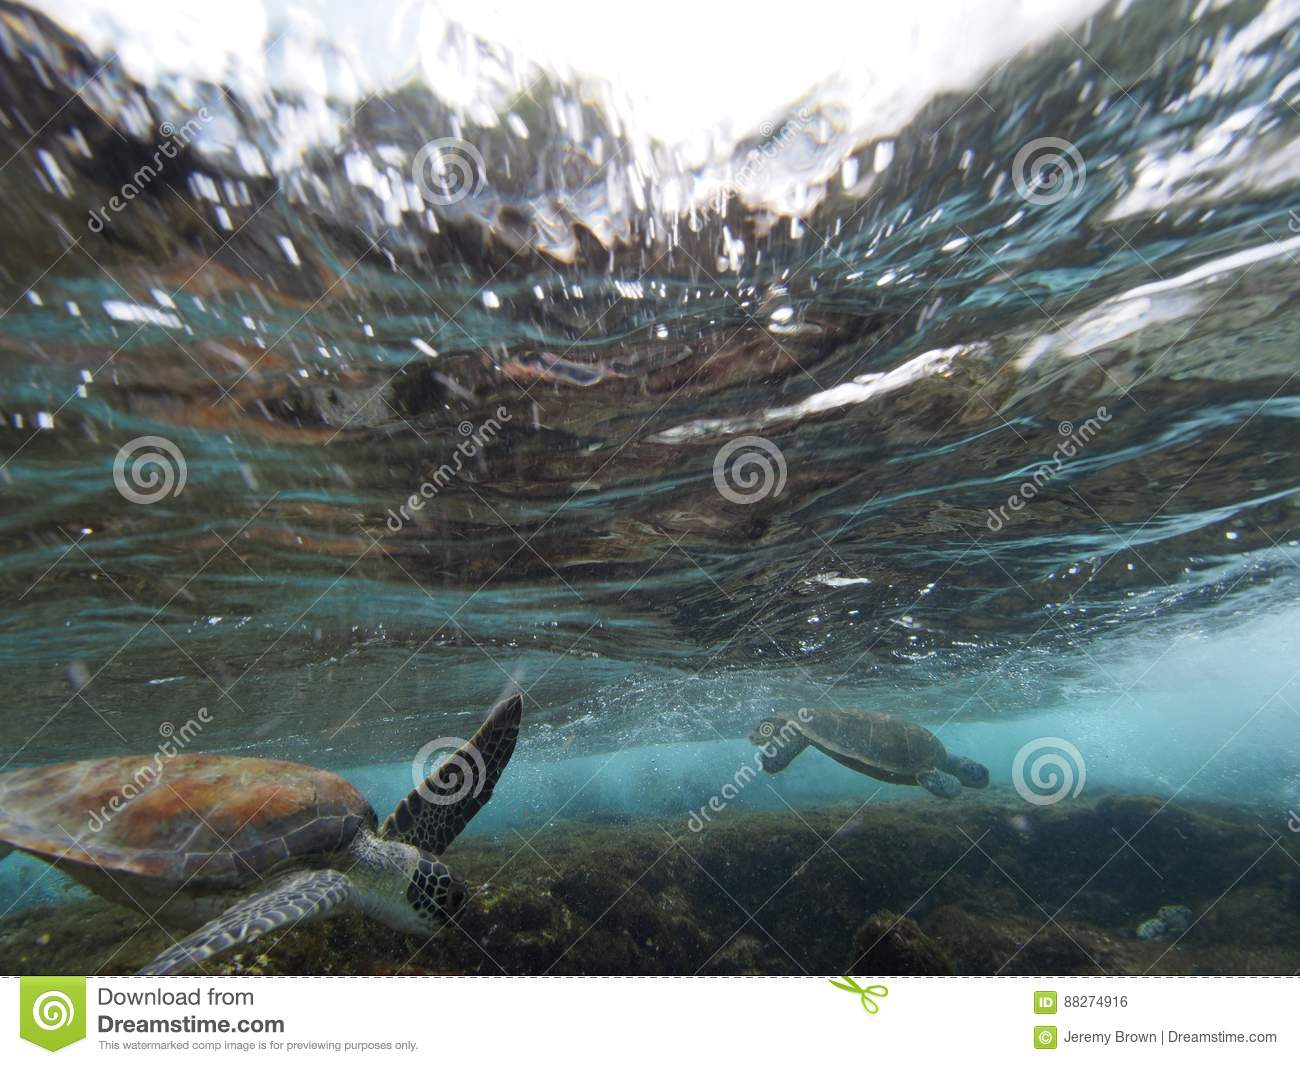 Surfing Green Turtle Stock Photo. Image Of Reptilia